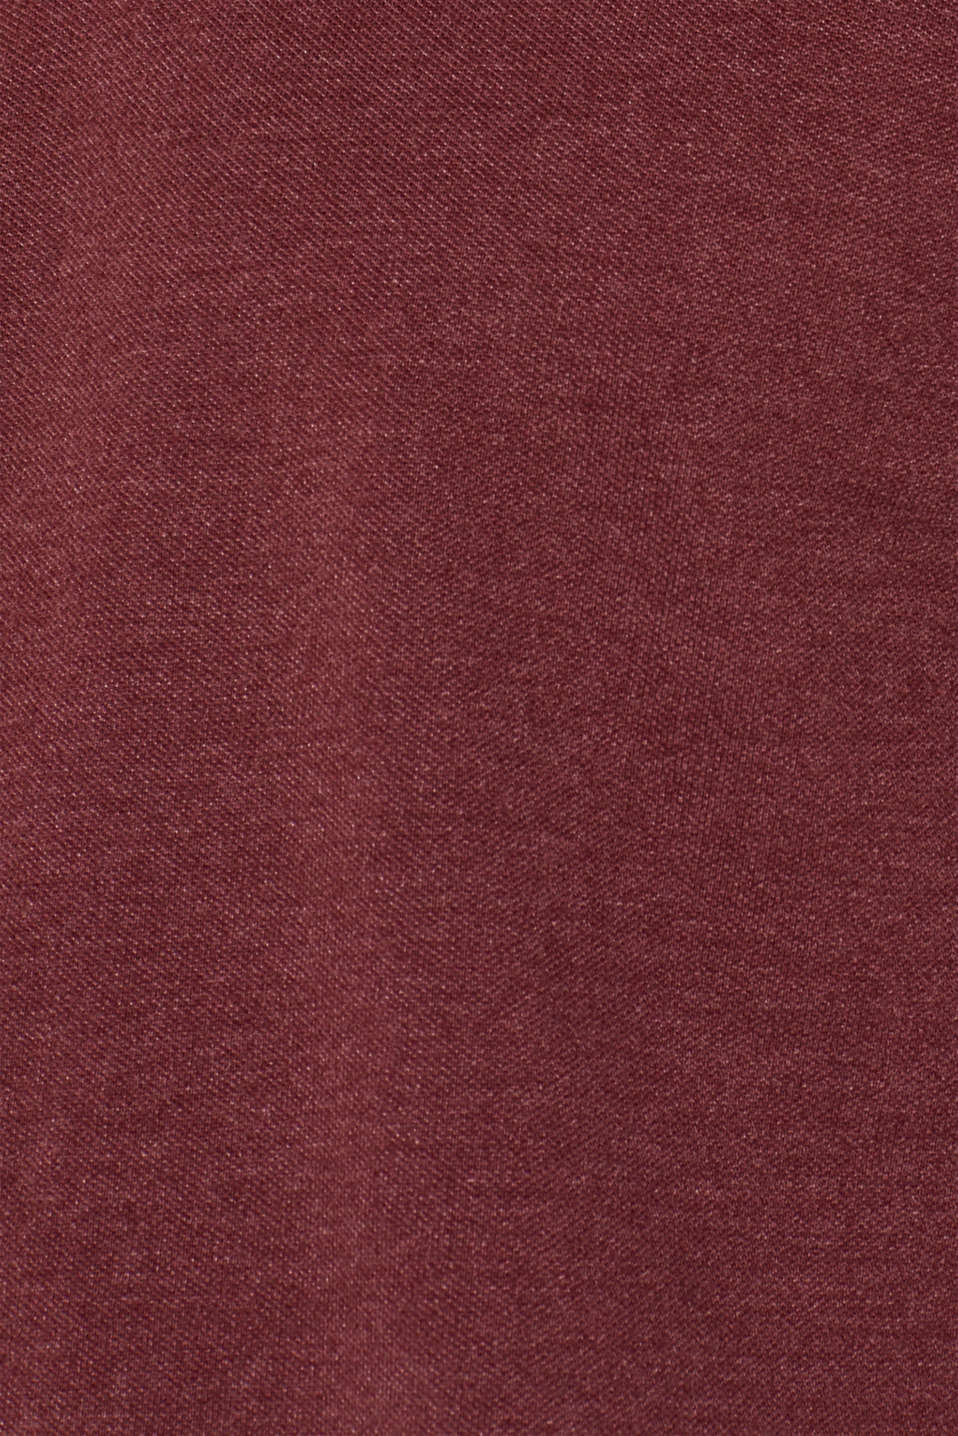 Piqué polo shirt in blended cotton, BORDEAUX RED, detail image number 4